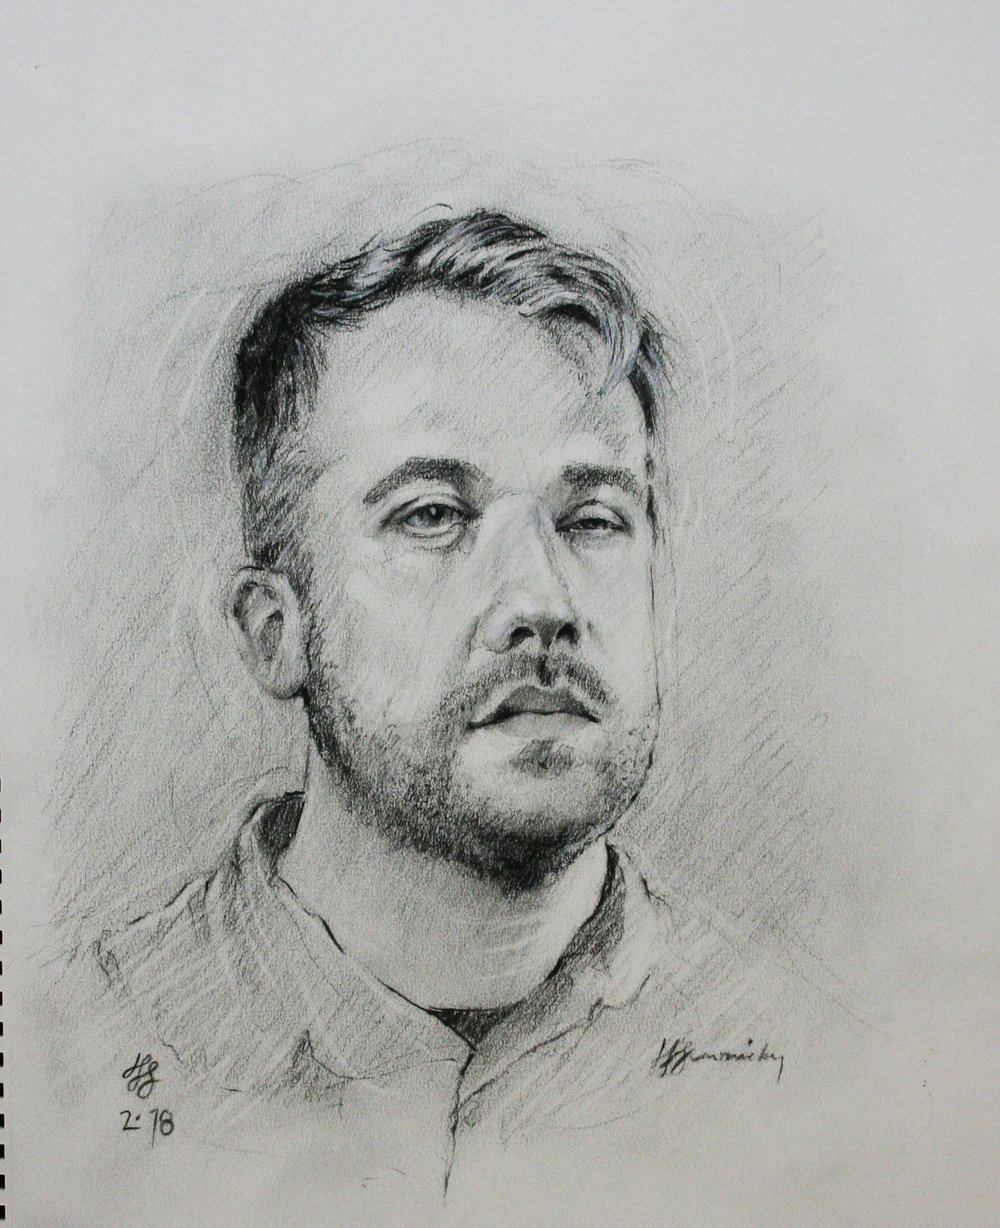 John Scavnicky did this drawing.